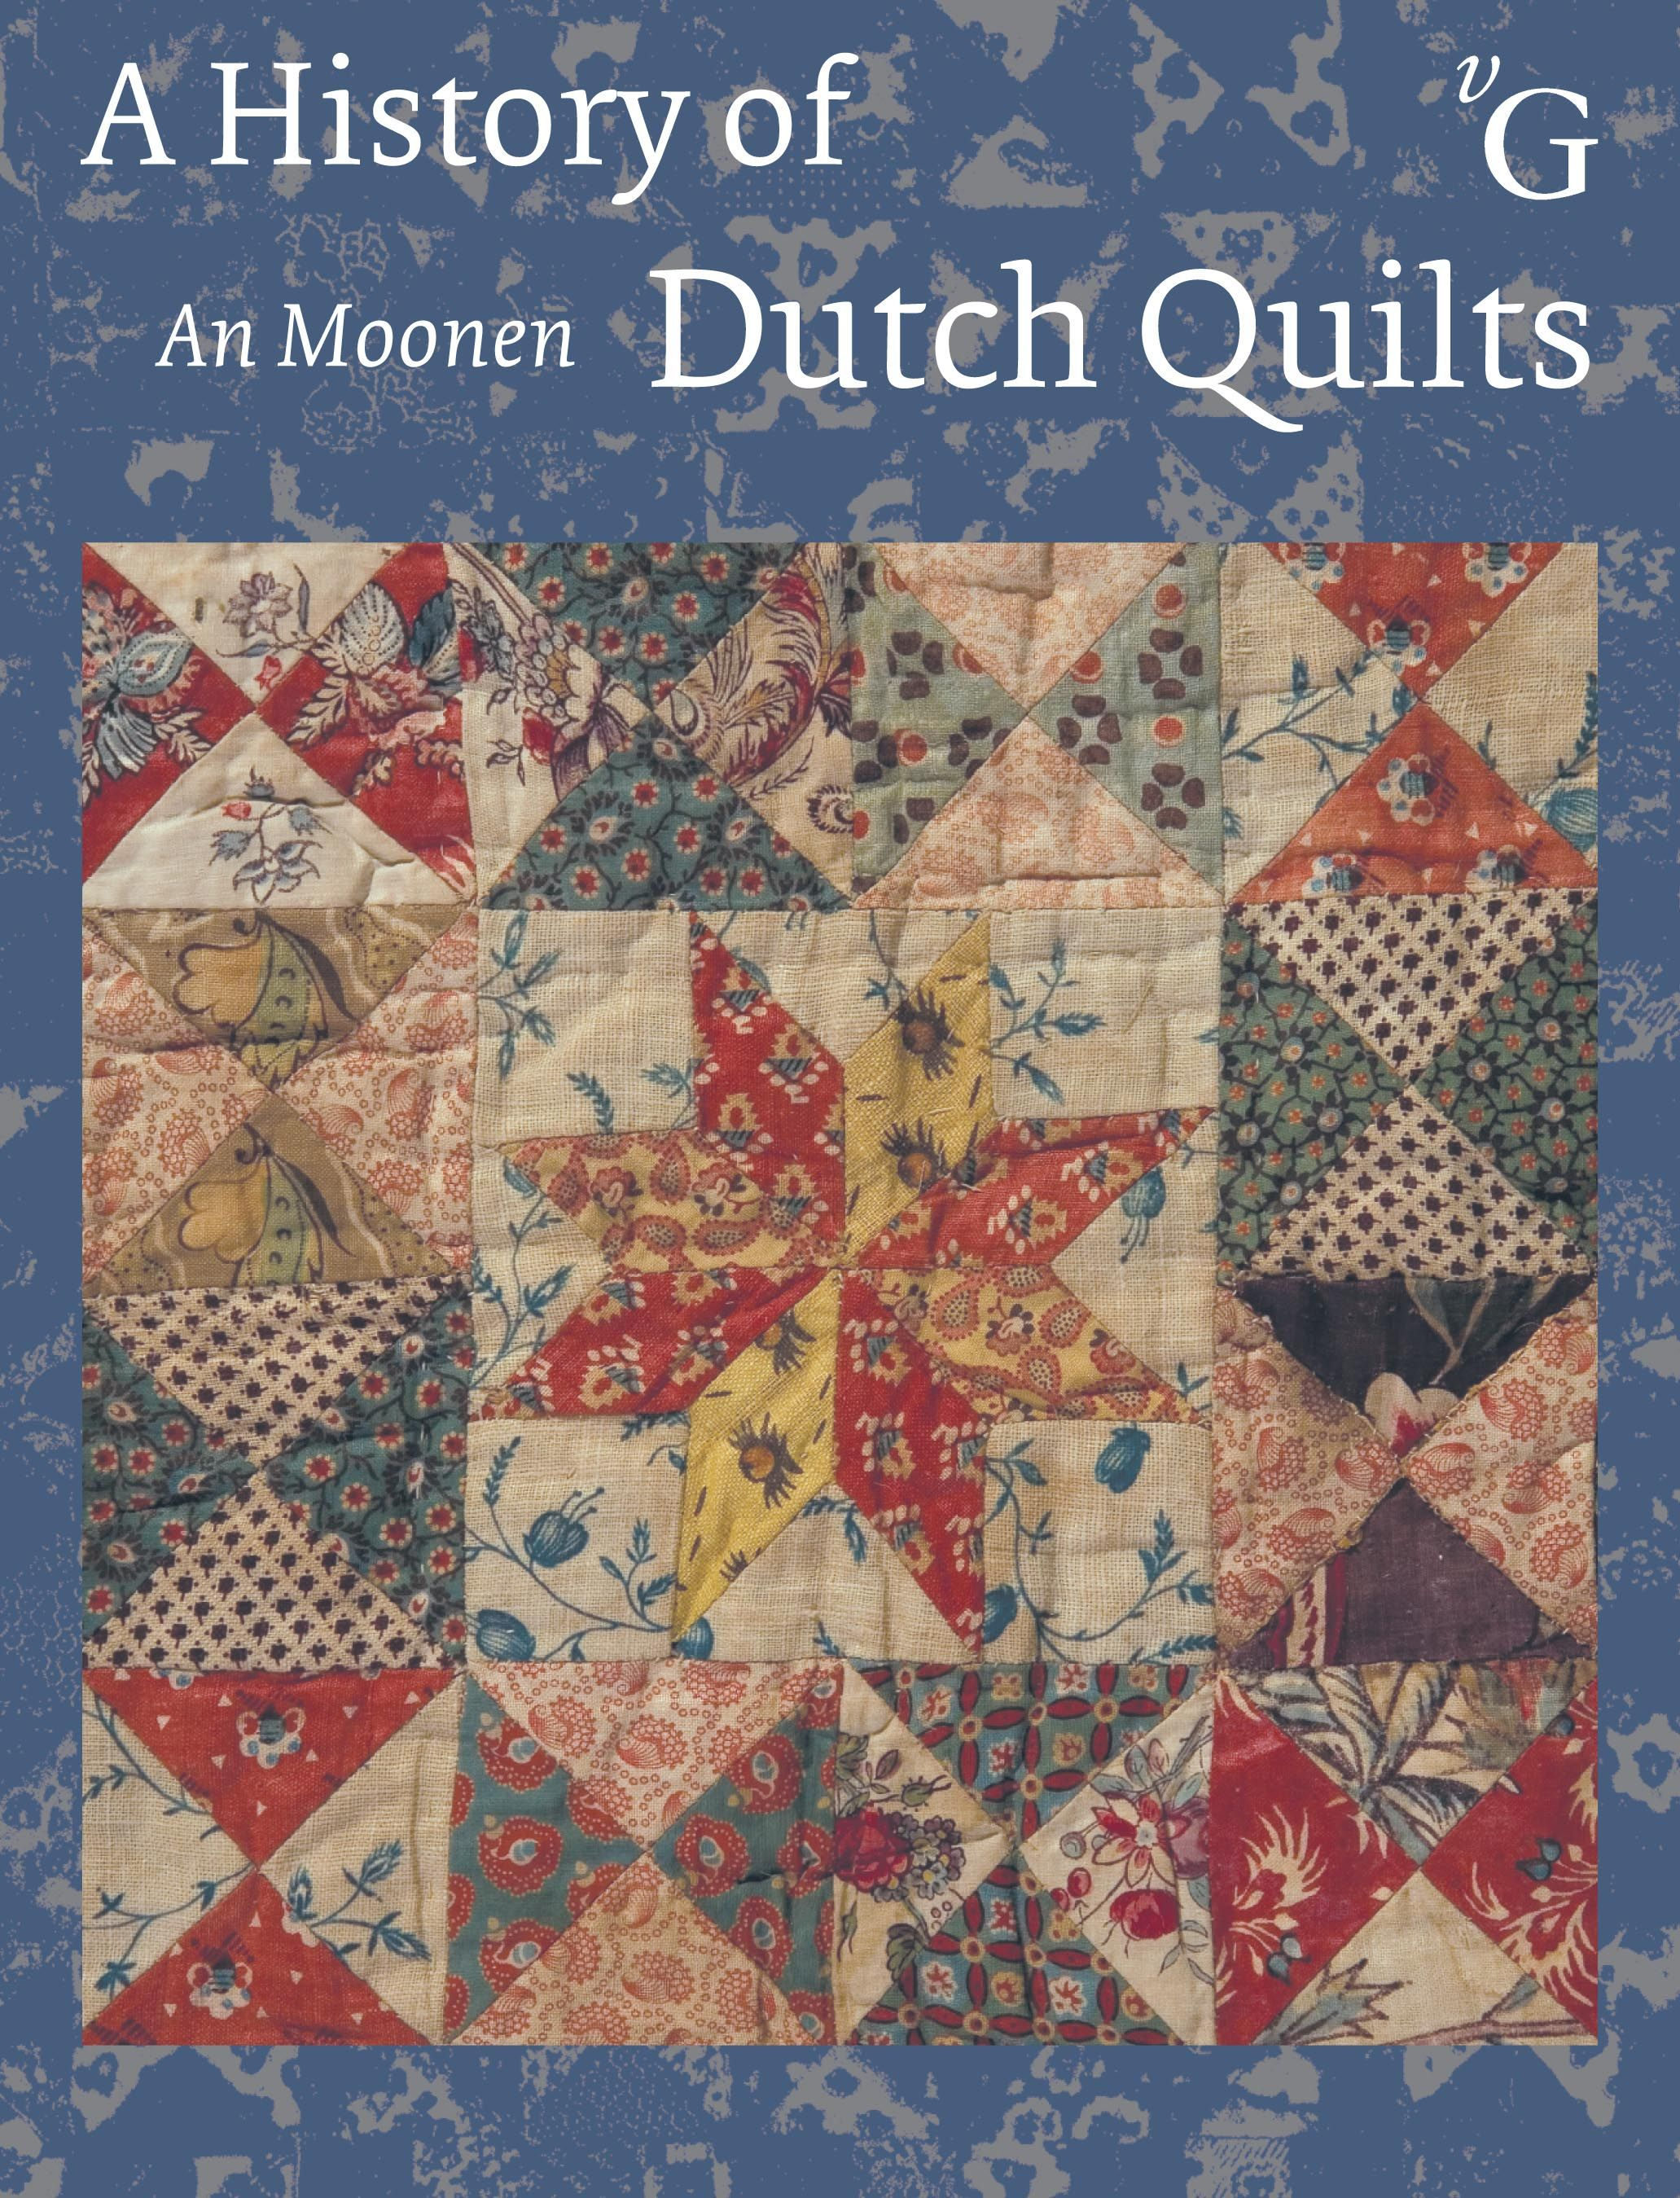 An Moonen Quilts.A History Of Dutch Quilts By An Moonen Quilts And Fabric